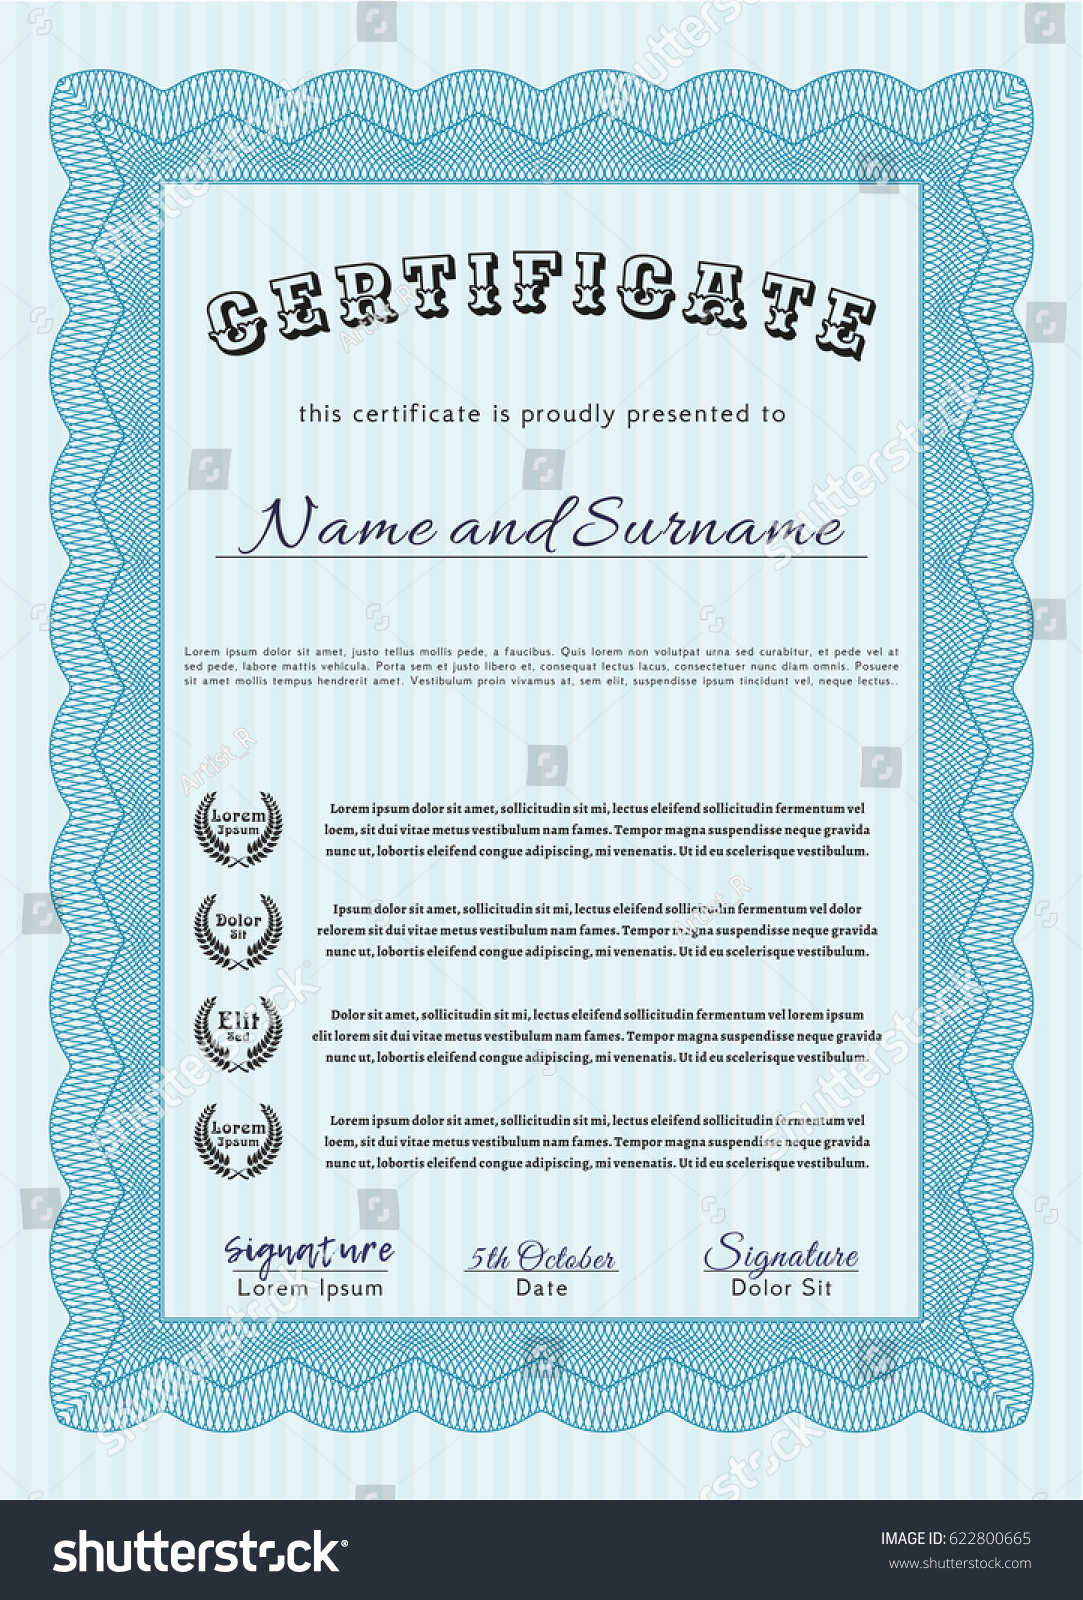 Light Blue Certificate Achievement Template Sophisticated Stock